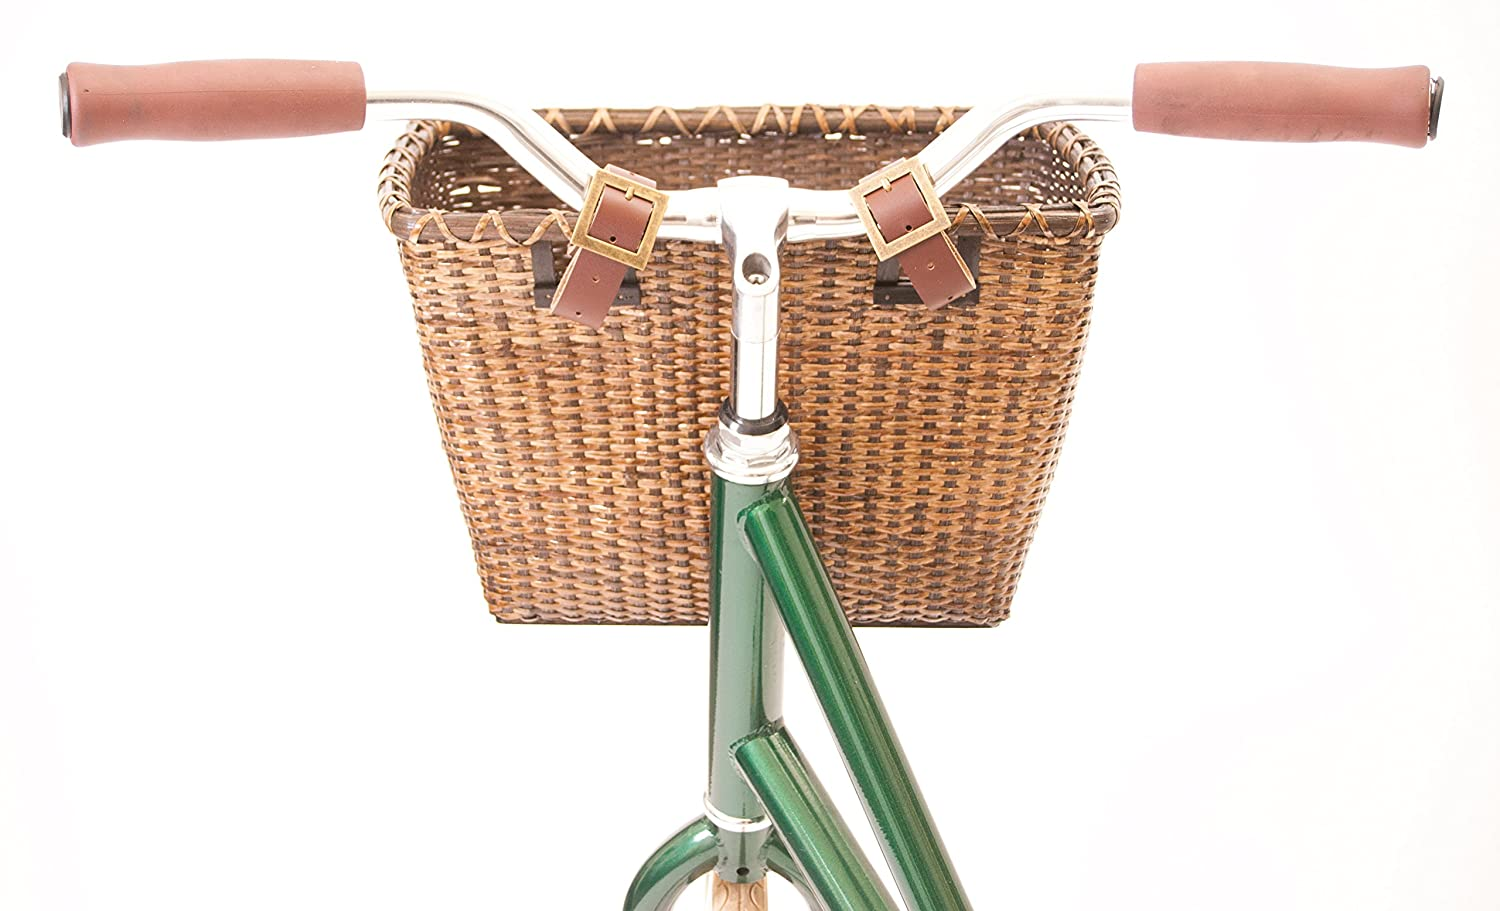 Retrospec Bicycle Cane Woven Rectangular Toto Basket with Authentic Leather Straps /& Brass Buckles, Black Xander Bicycle Corporation 1914